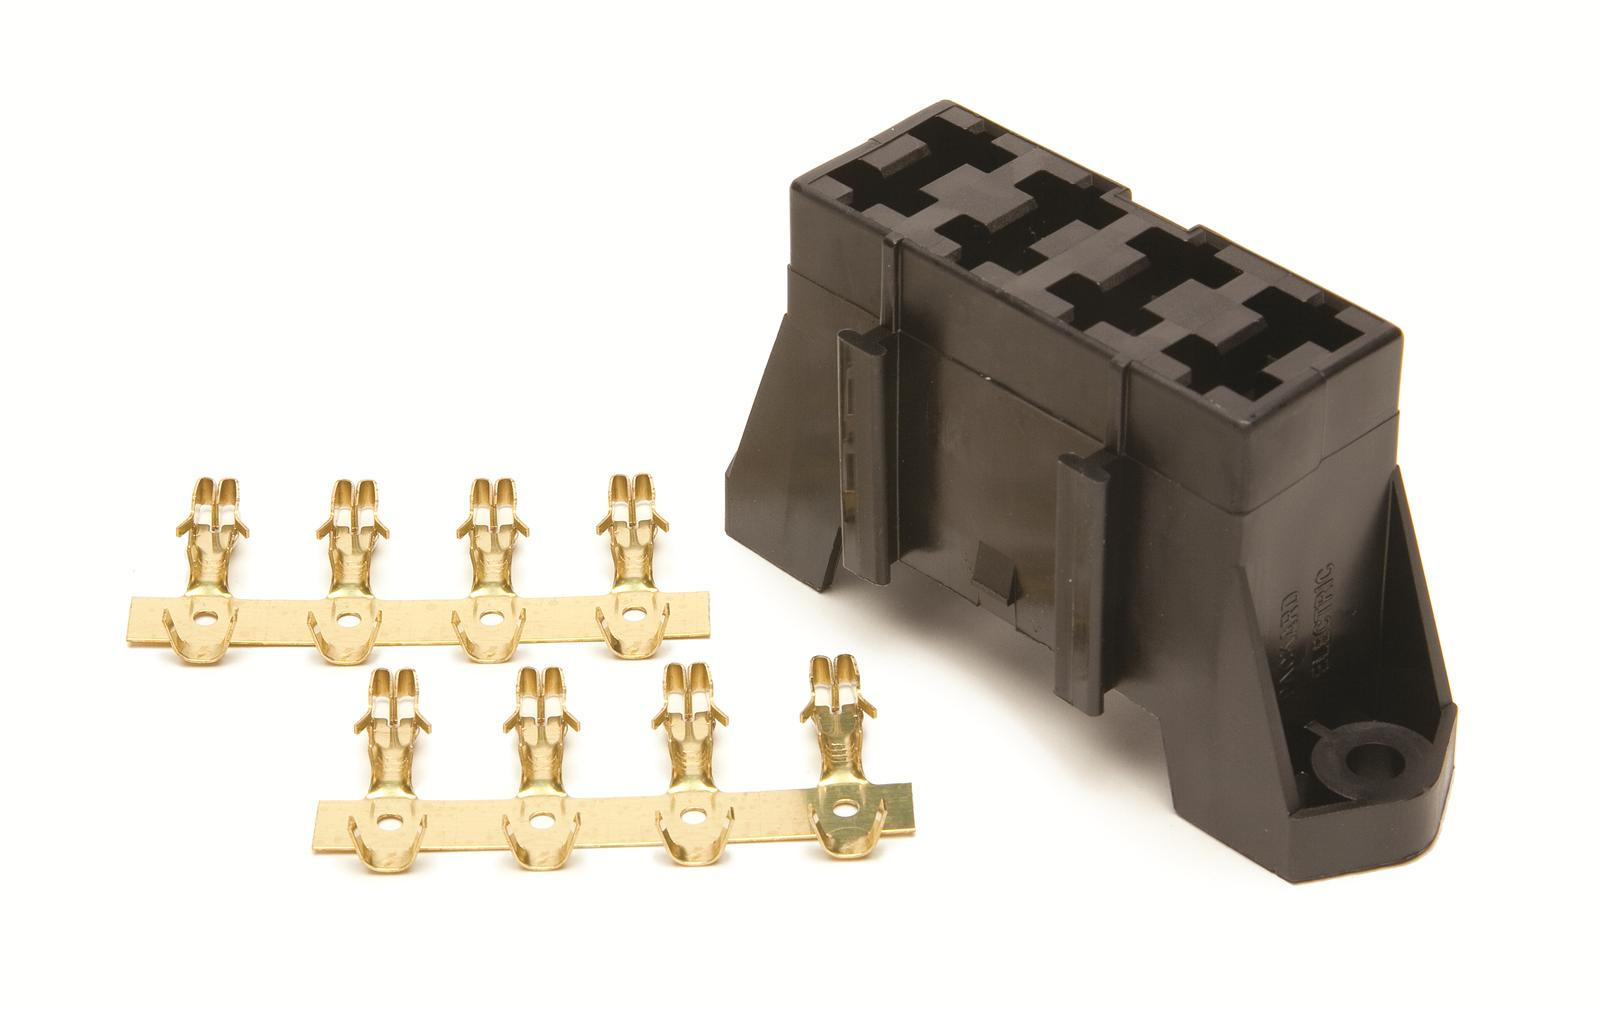 Painless Performance Universal Fuse Blocks 30002 - Free Shipping on Orders  Over $99 at Summit Racing